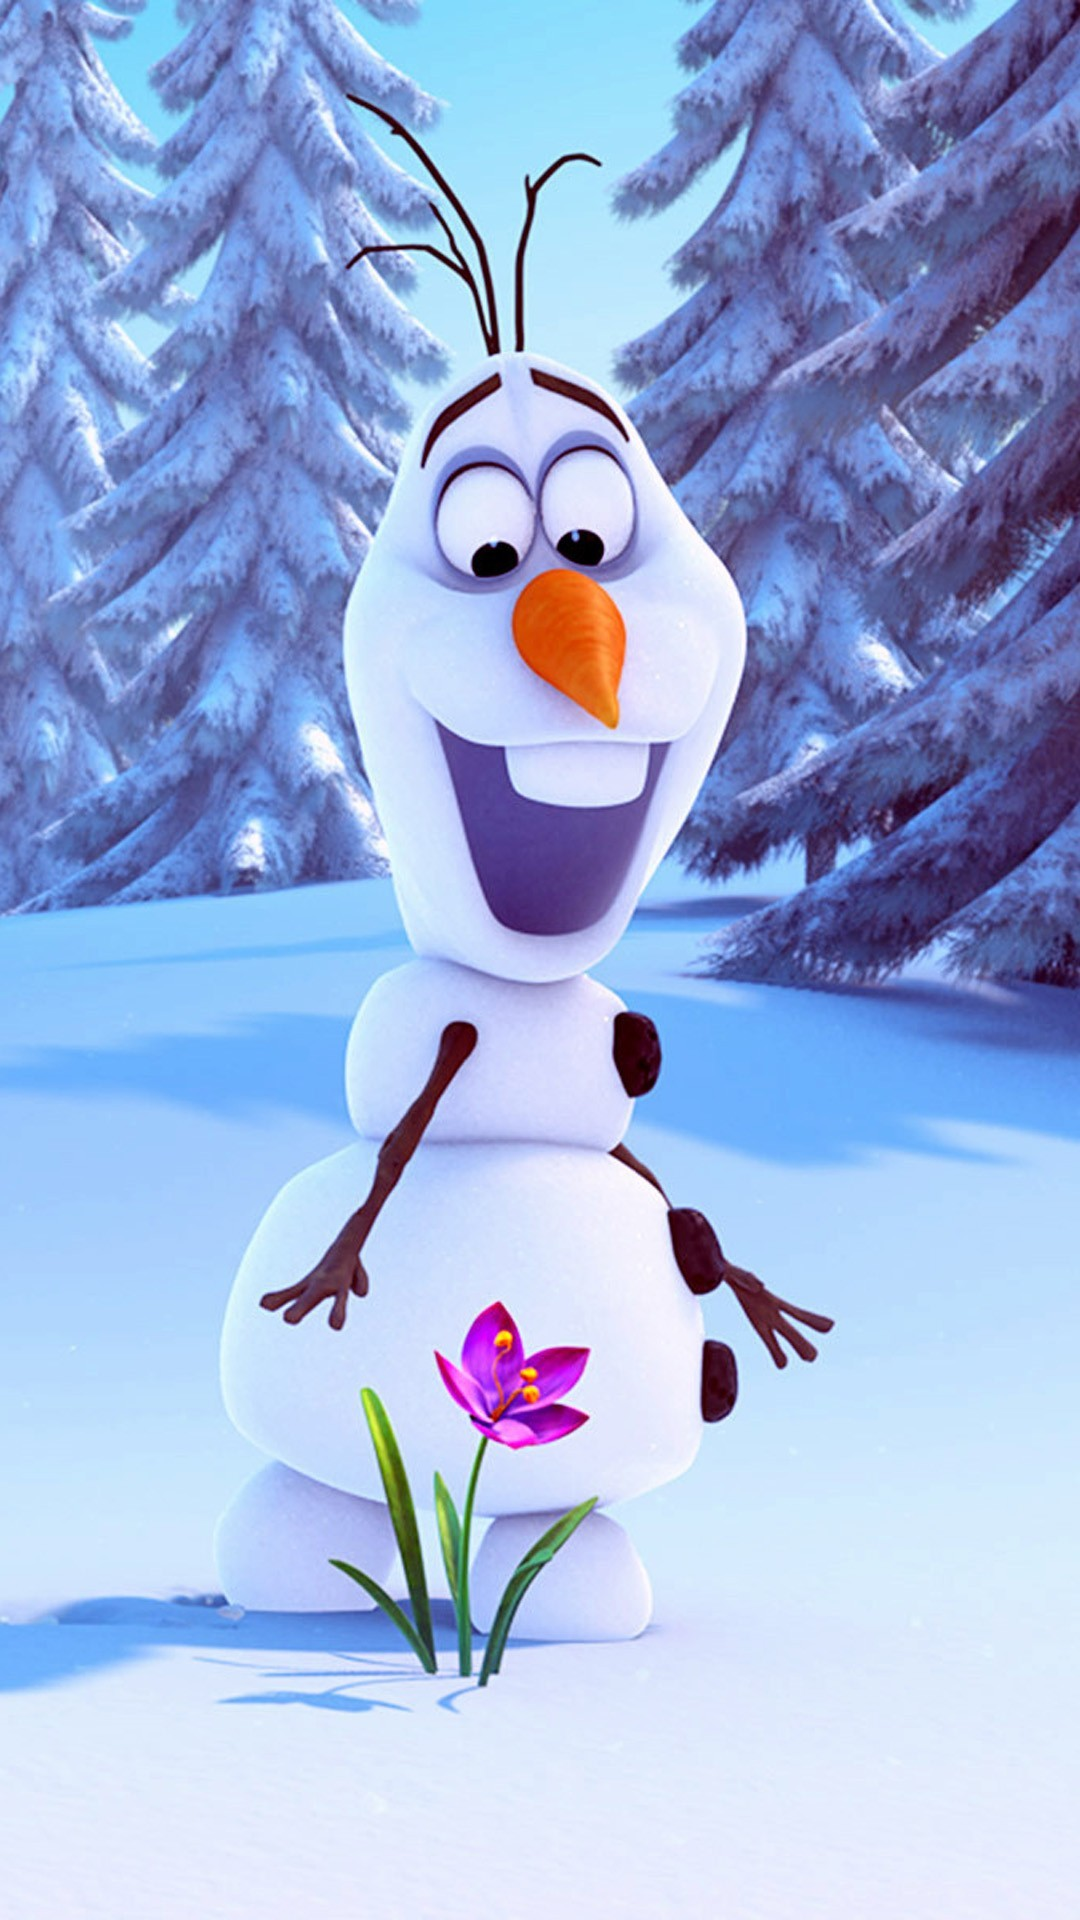 Christmas Olaf Wallpapers Backgrounds (55+ images)